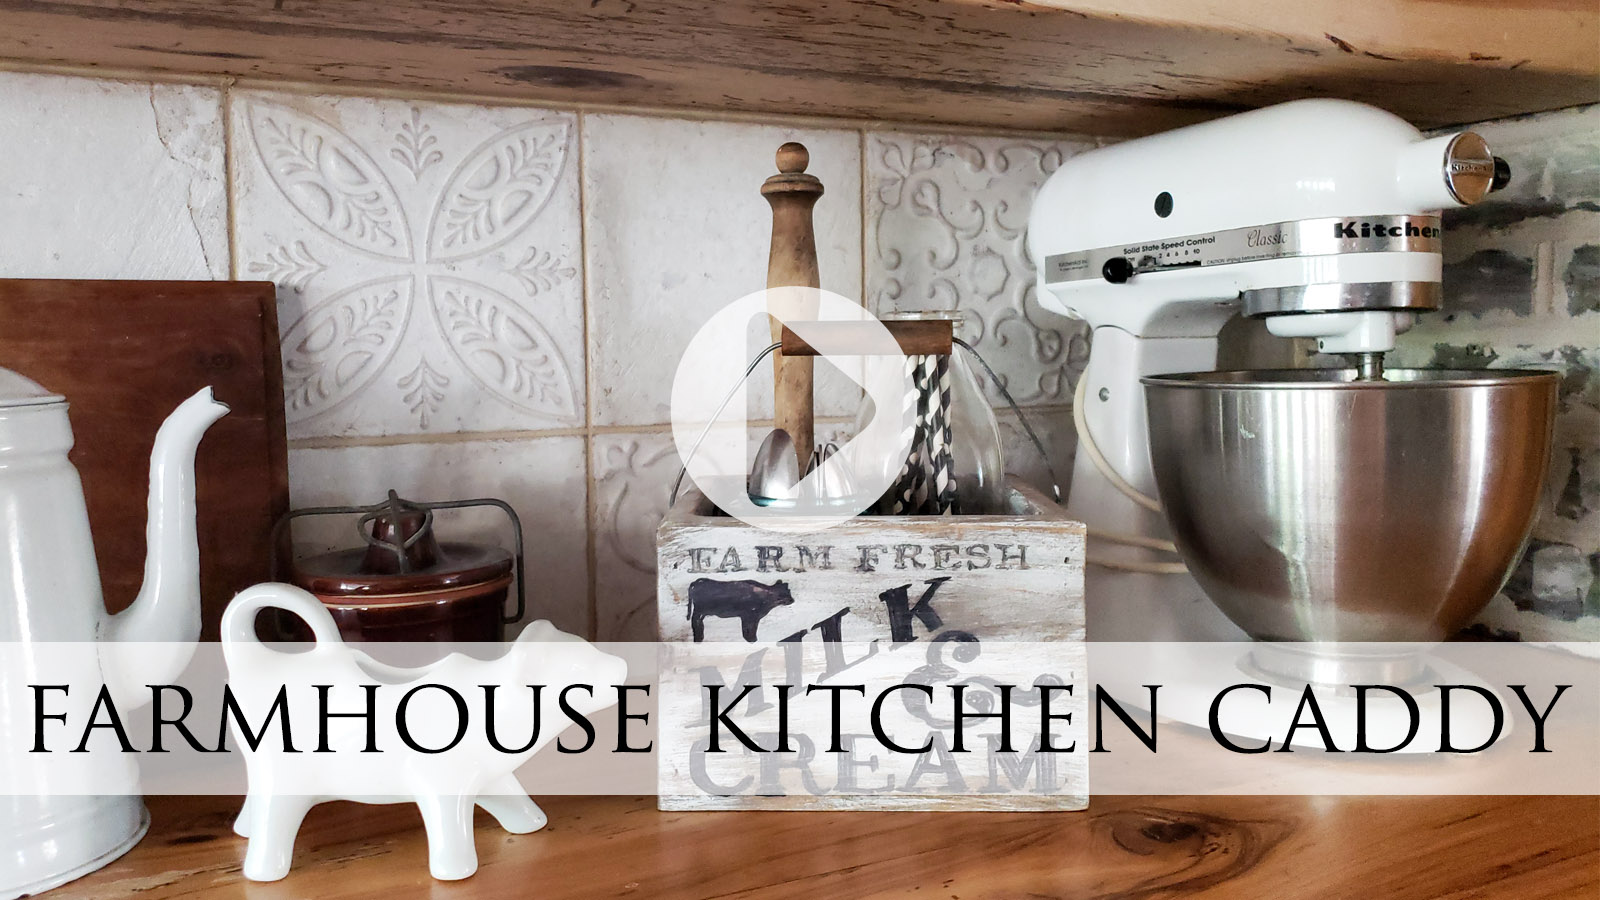 Farmhouse Kitchen Caddy Upcycle Video Tutorial by Larissa of Prodigal Pieces | prodigalpieces.com